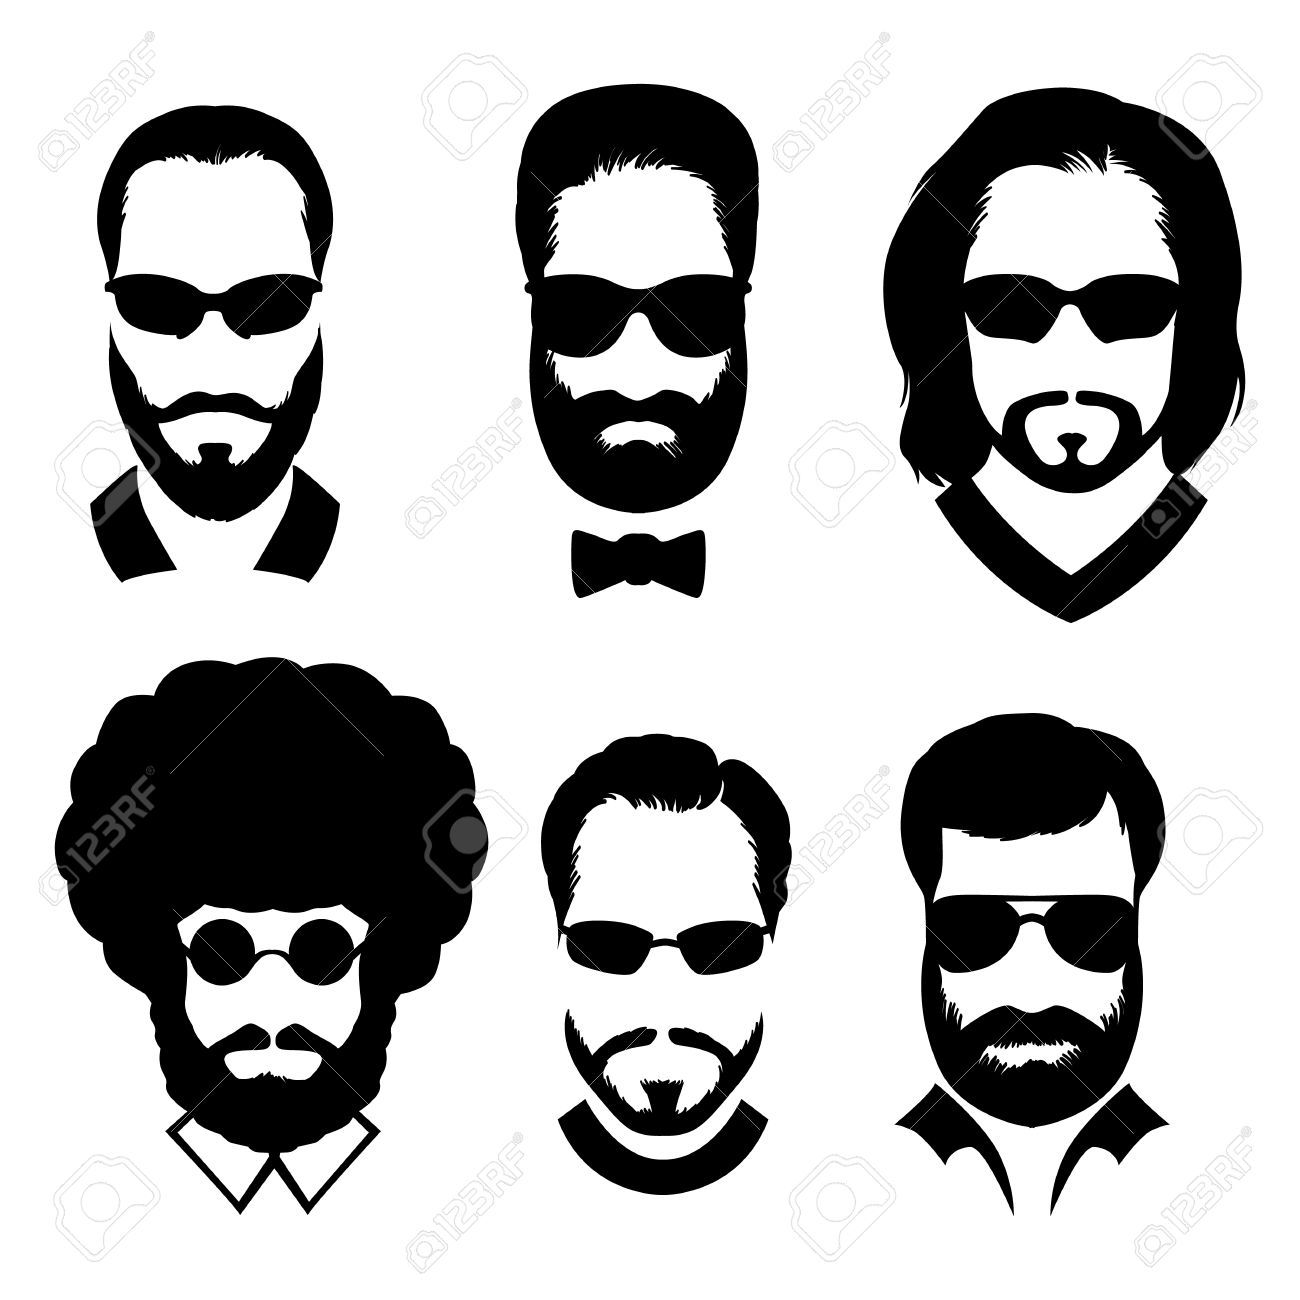 Image result for man with beard clipart in 2019.